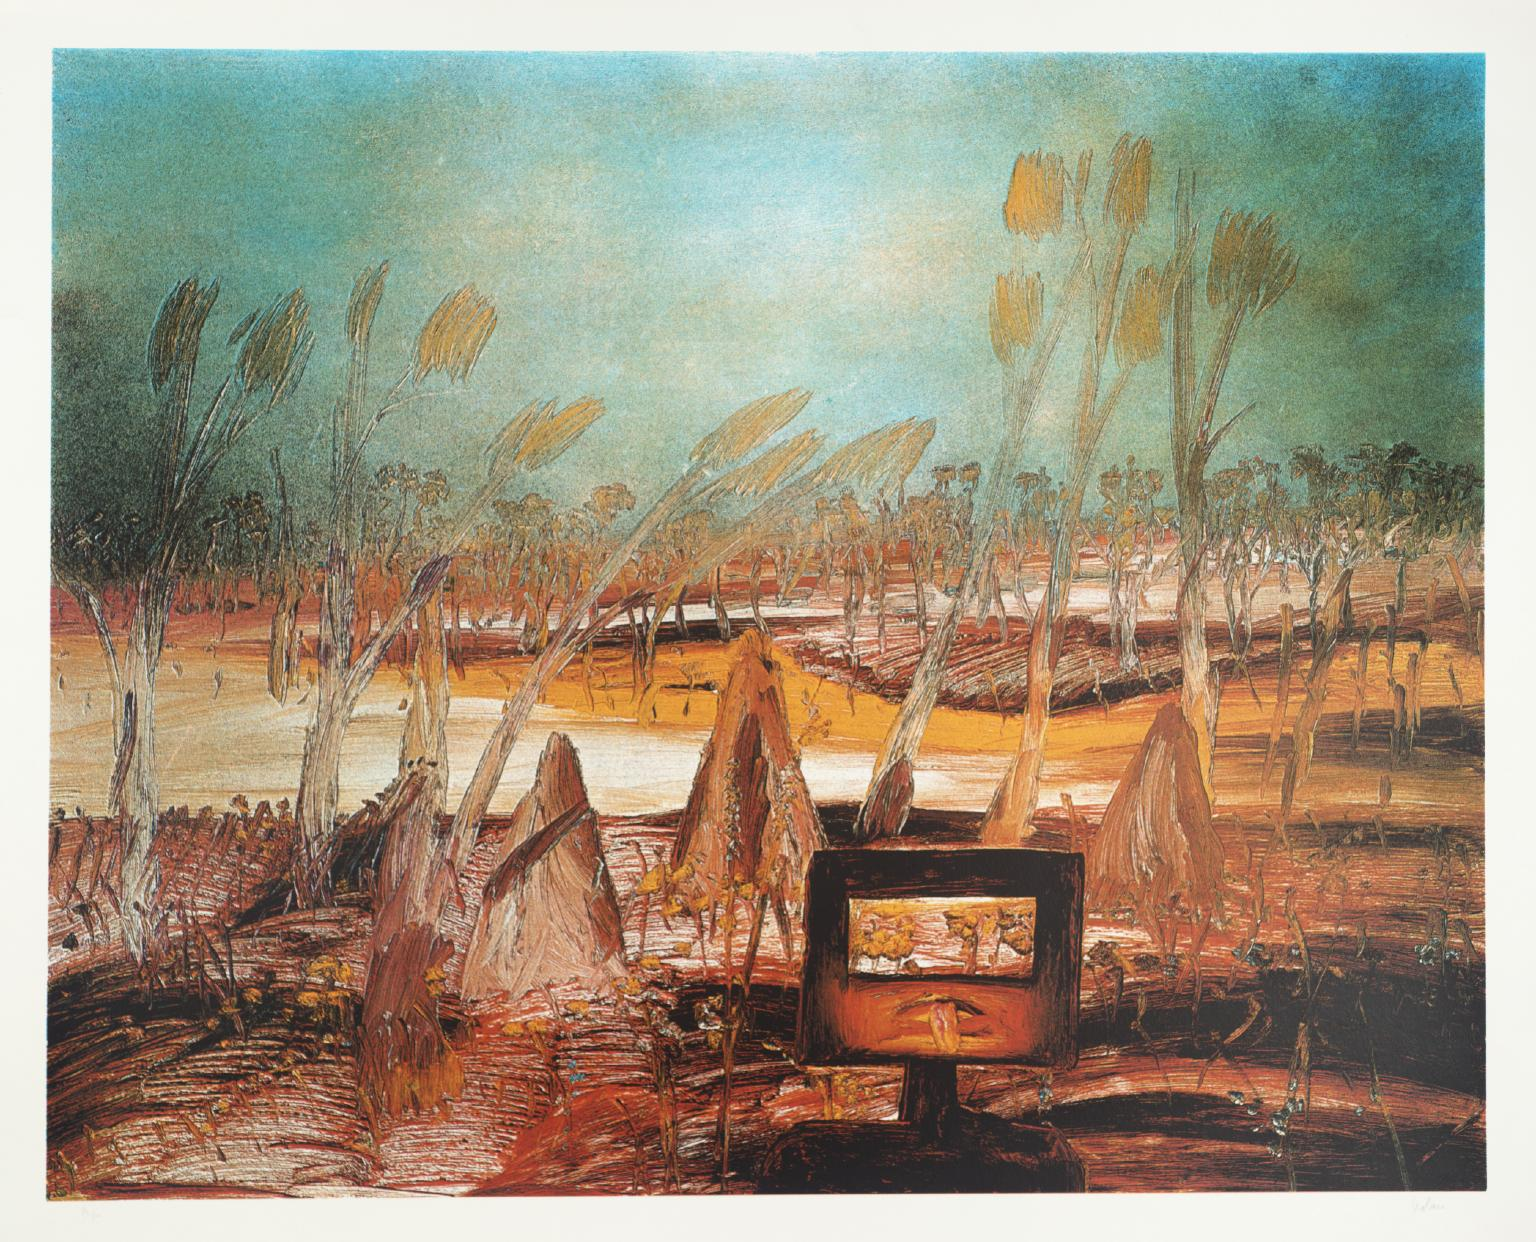 Ned Kelly 1973 by Sir Sidney Nolan 1917-1992